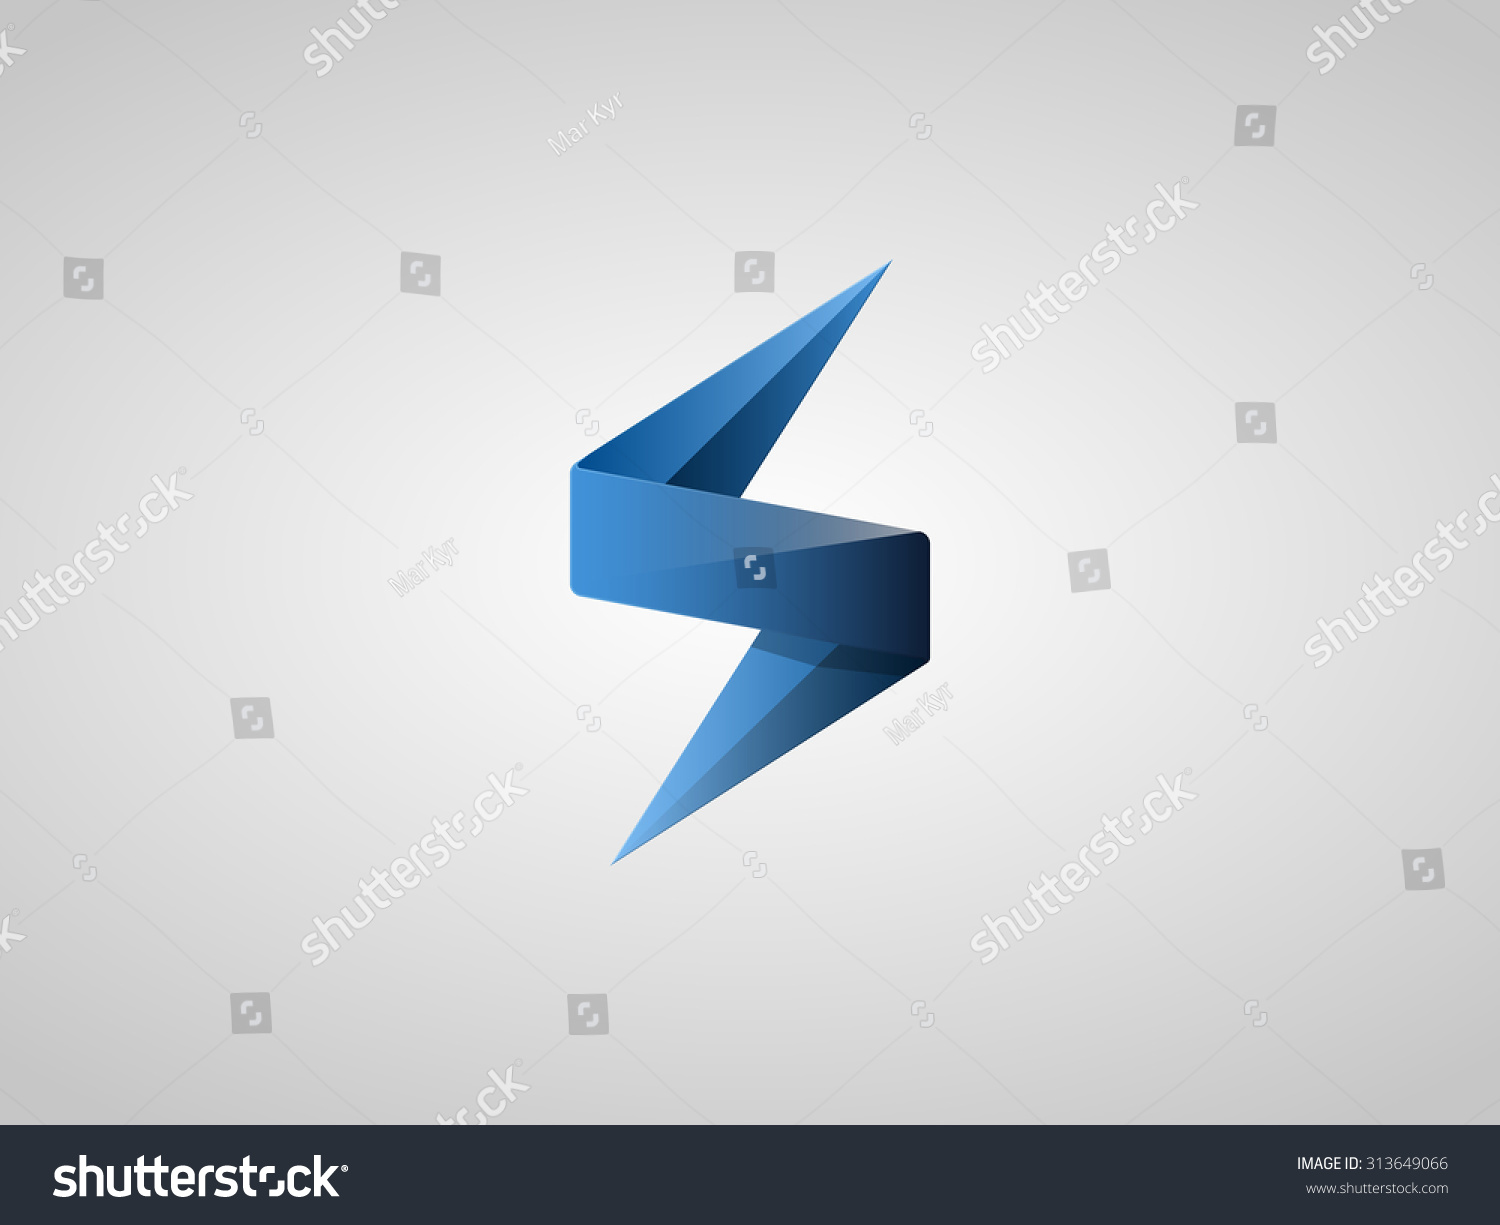 Blue Lighting Bolt Flash Logo Design Stock Vector 313649066 ... for Vector Lighting Bolt  183qdu